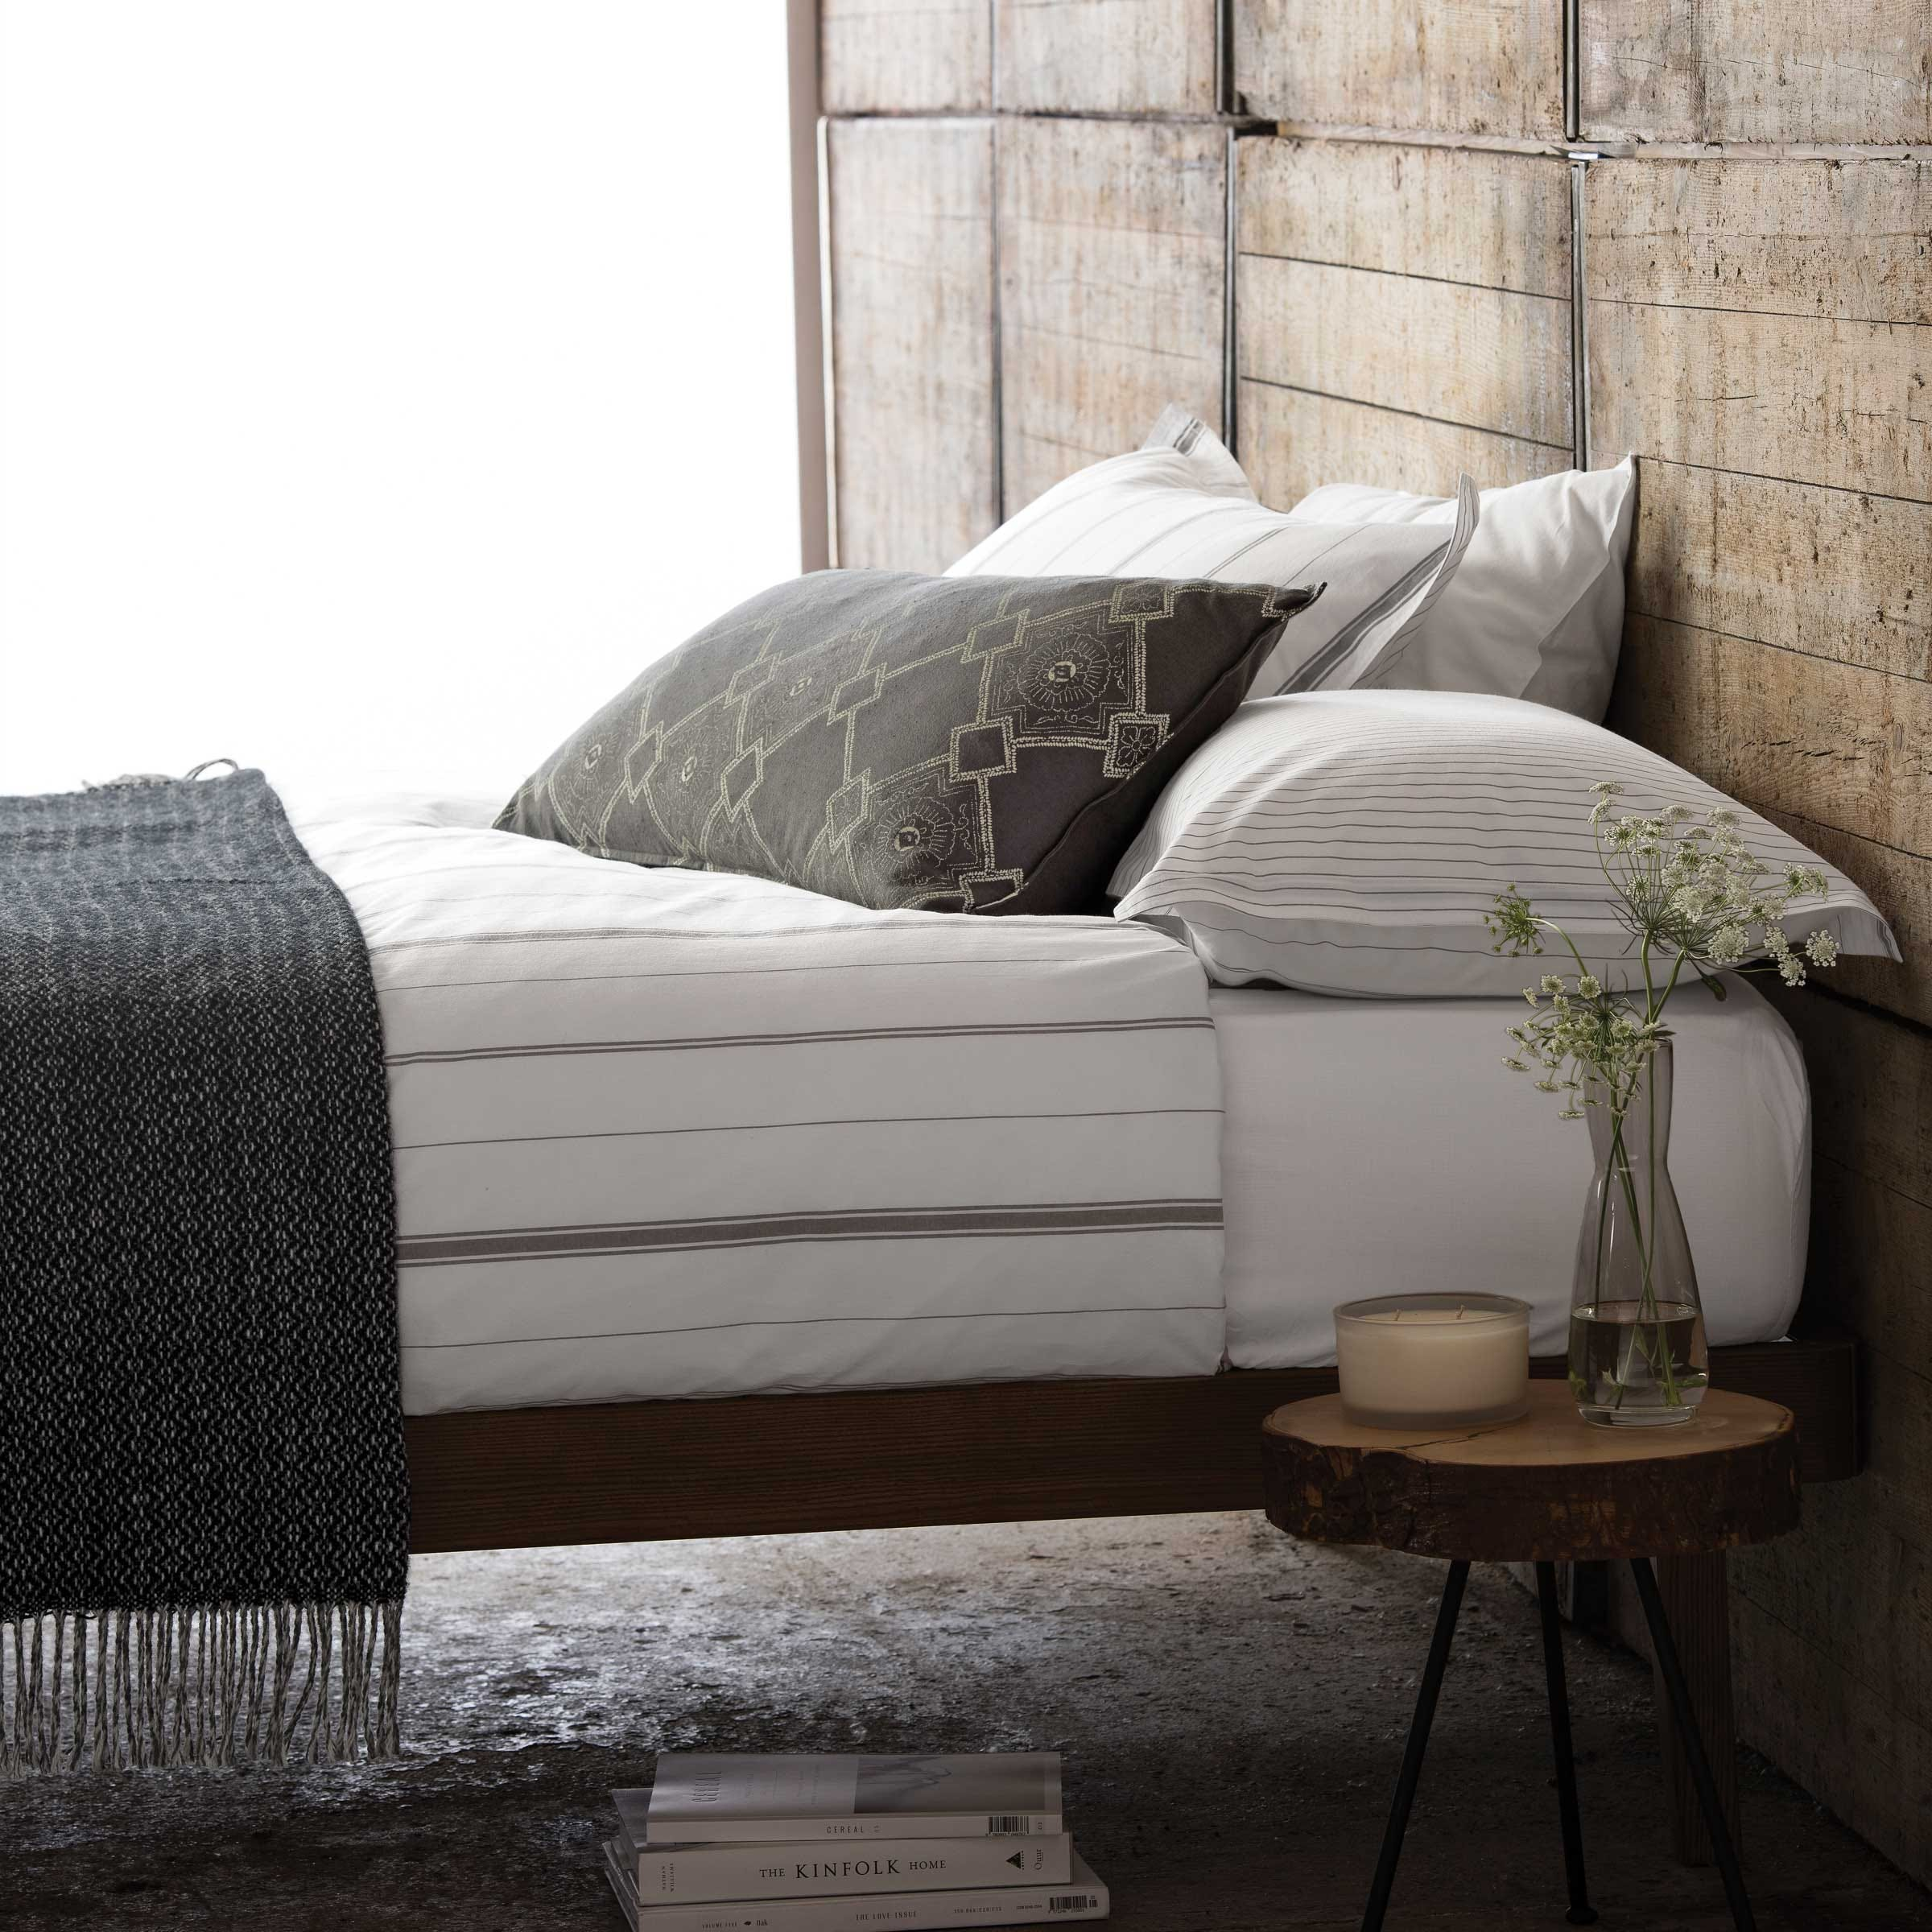 Murmur Shadow Stripe White and Grey Bedding